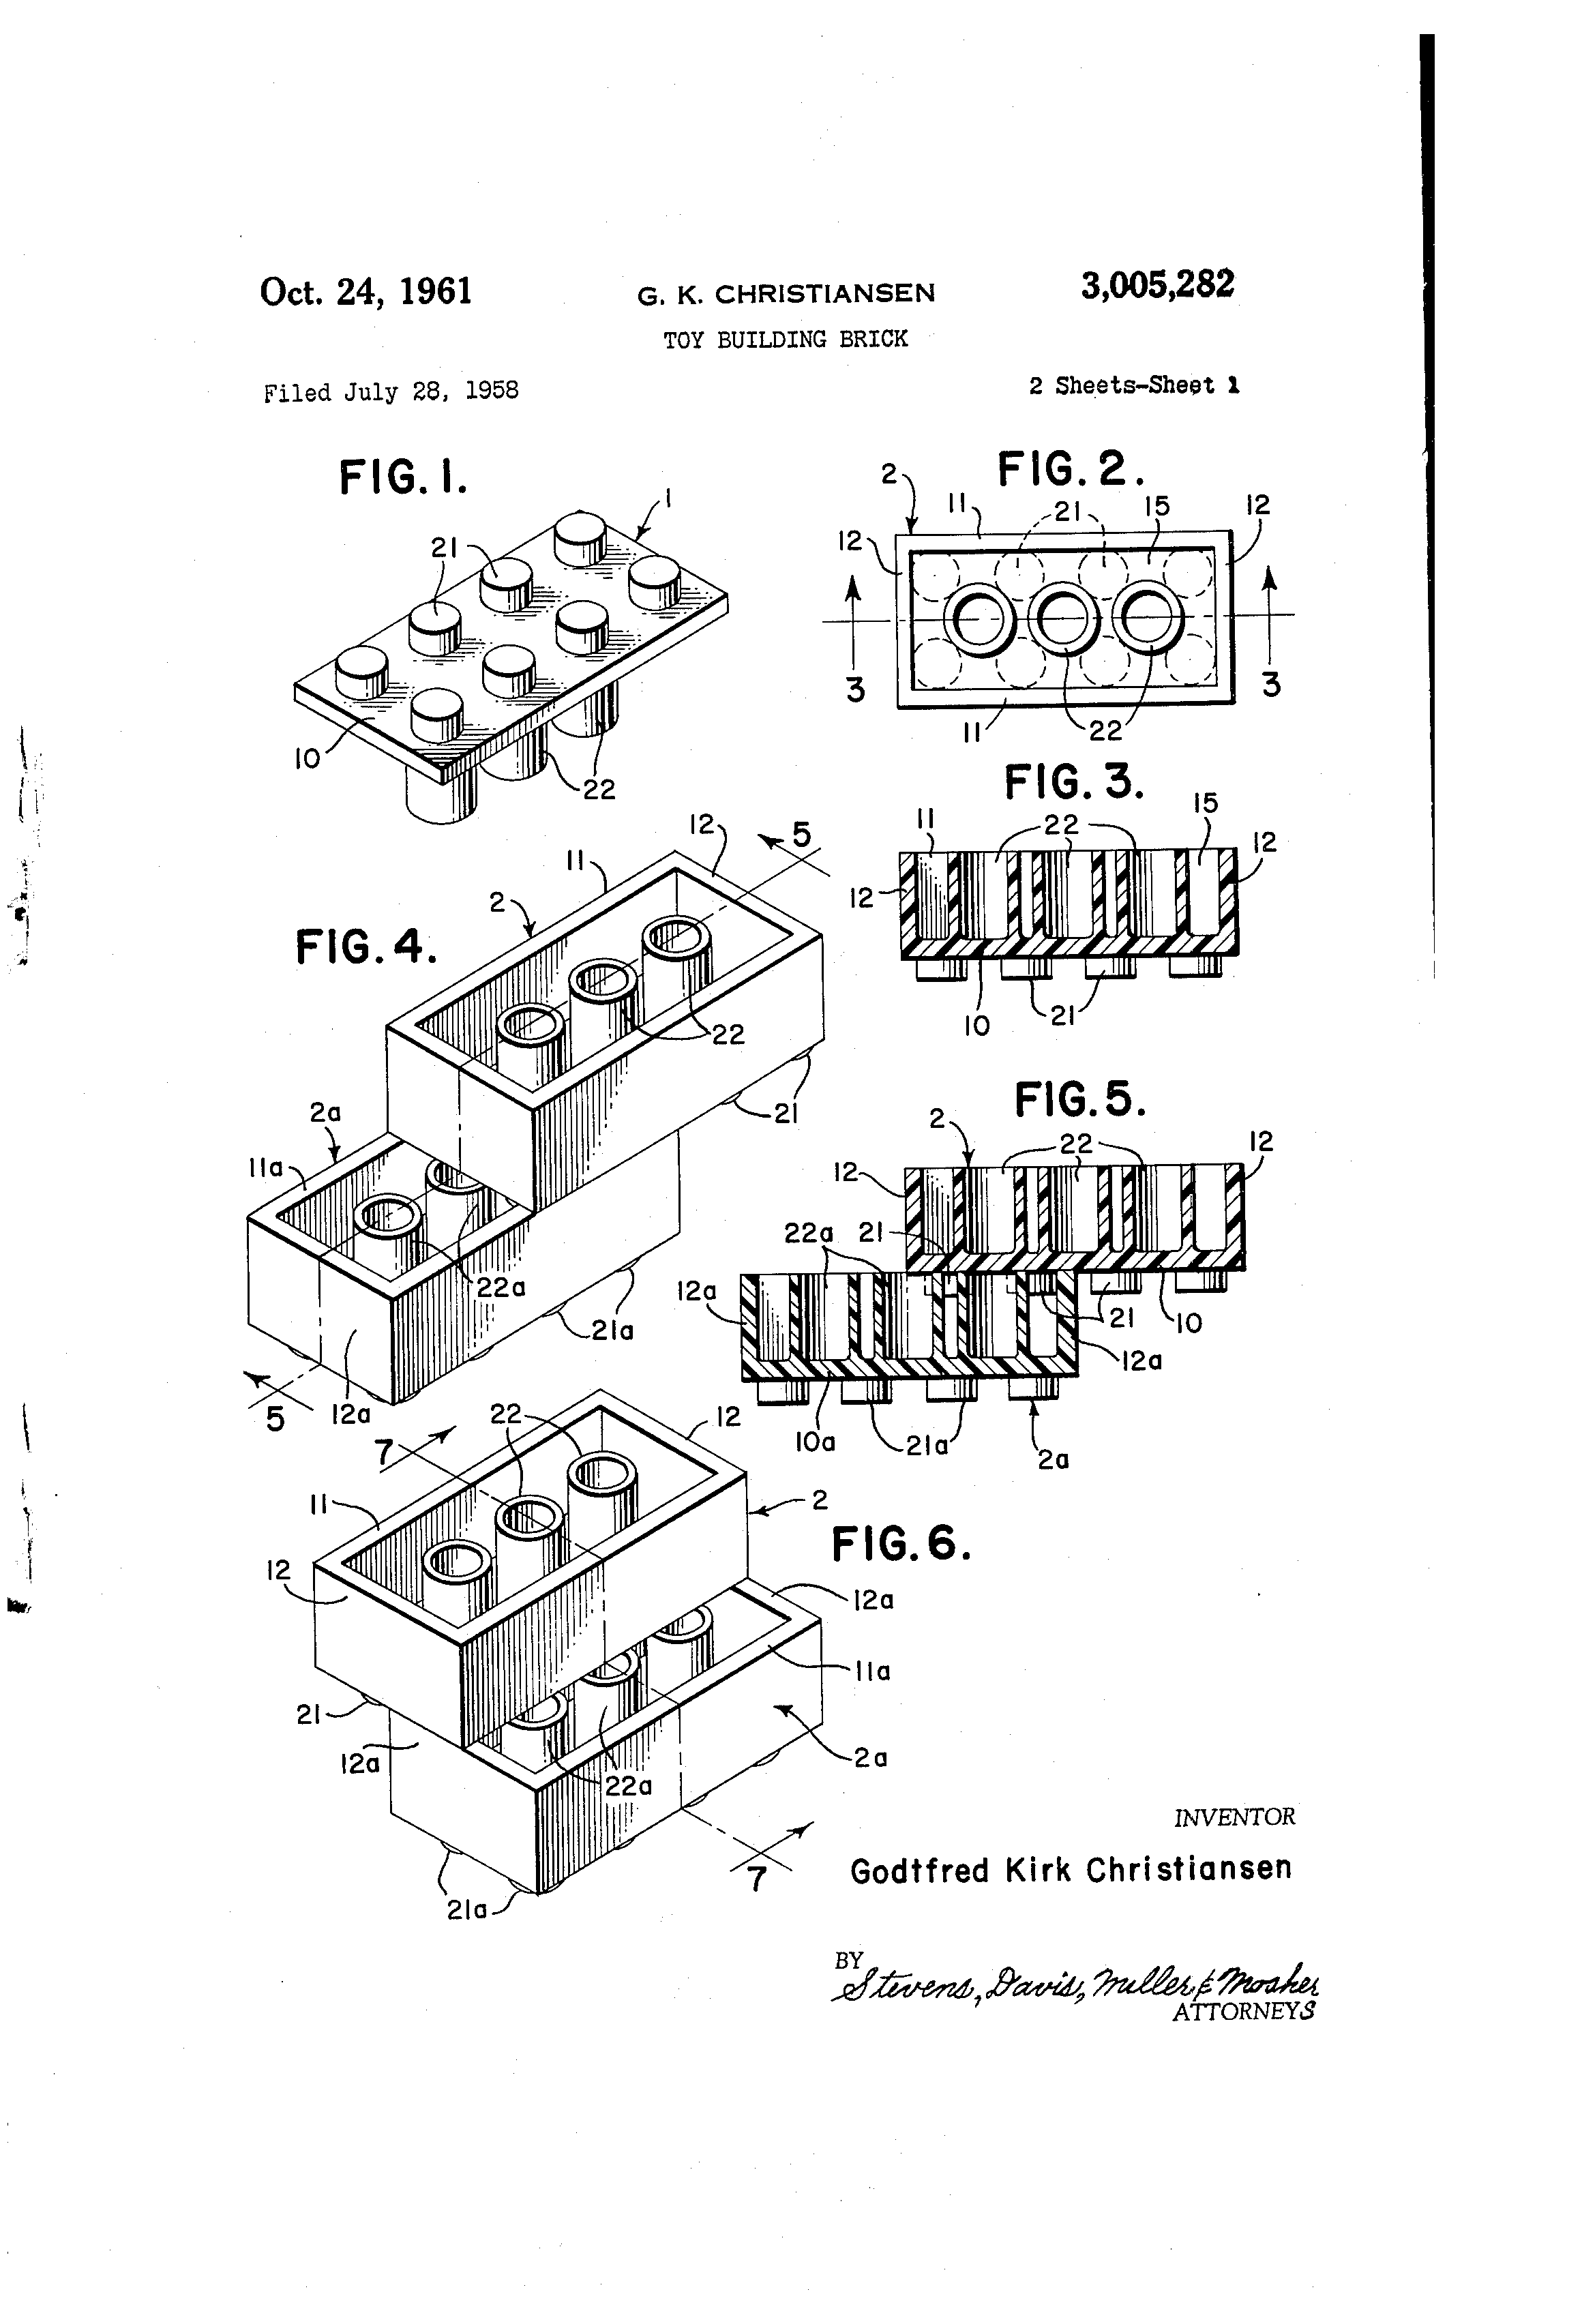 File Us3005282a Toy Building Brick 1958 Filed 1961 Published By Christiansen Godtfred Kirk Lego Brick P 1 Fig 1 6 Png Wikimedia Commons